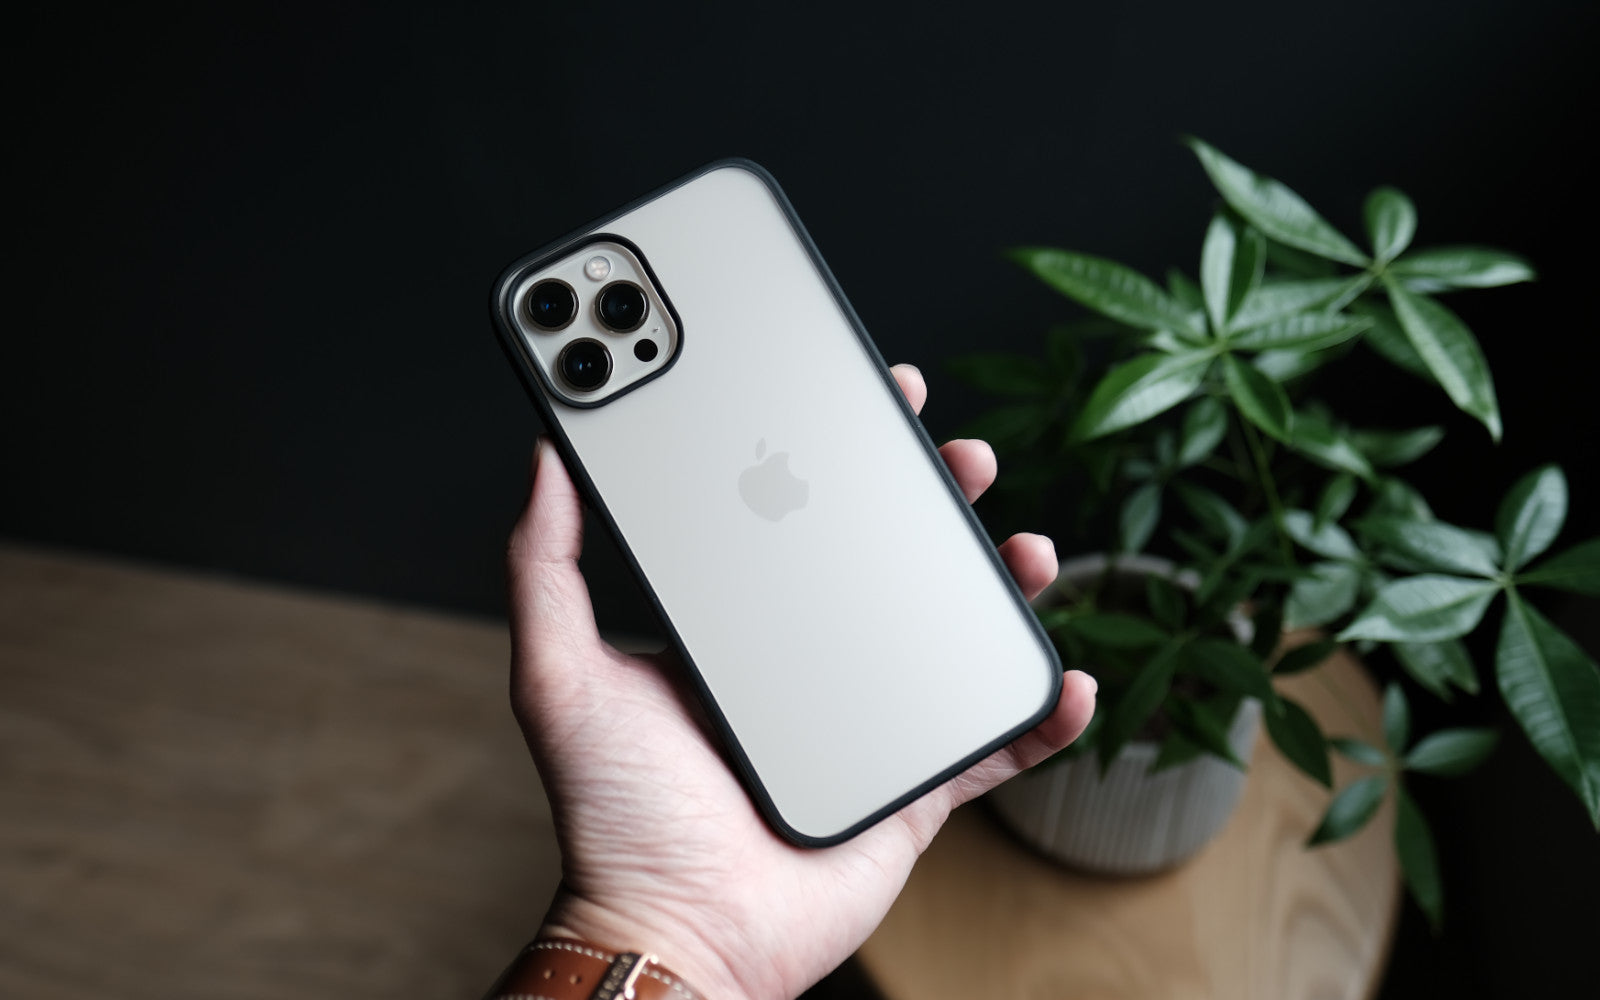 Bare Armour - Minimalist Shock Resistant Case for iPhone 12 Pro and iPhone 12 Pro Max - Branding-Free